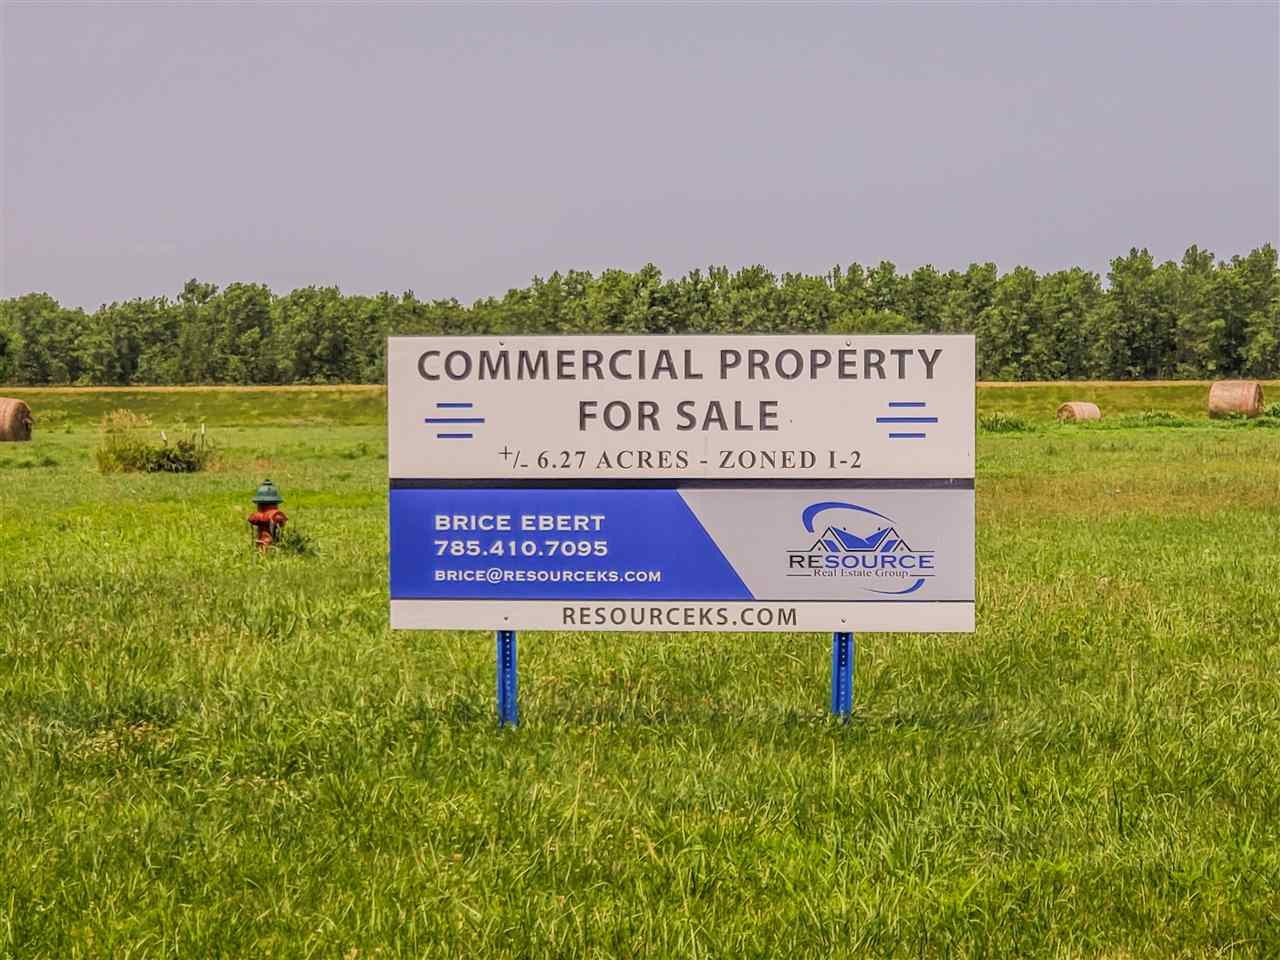 Vacant Commercial Lot. Build your business here. Zoned 1-2. Taxes are an estimate.